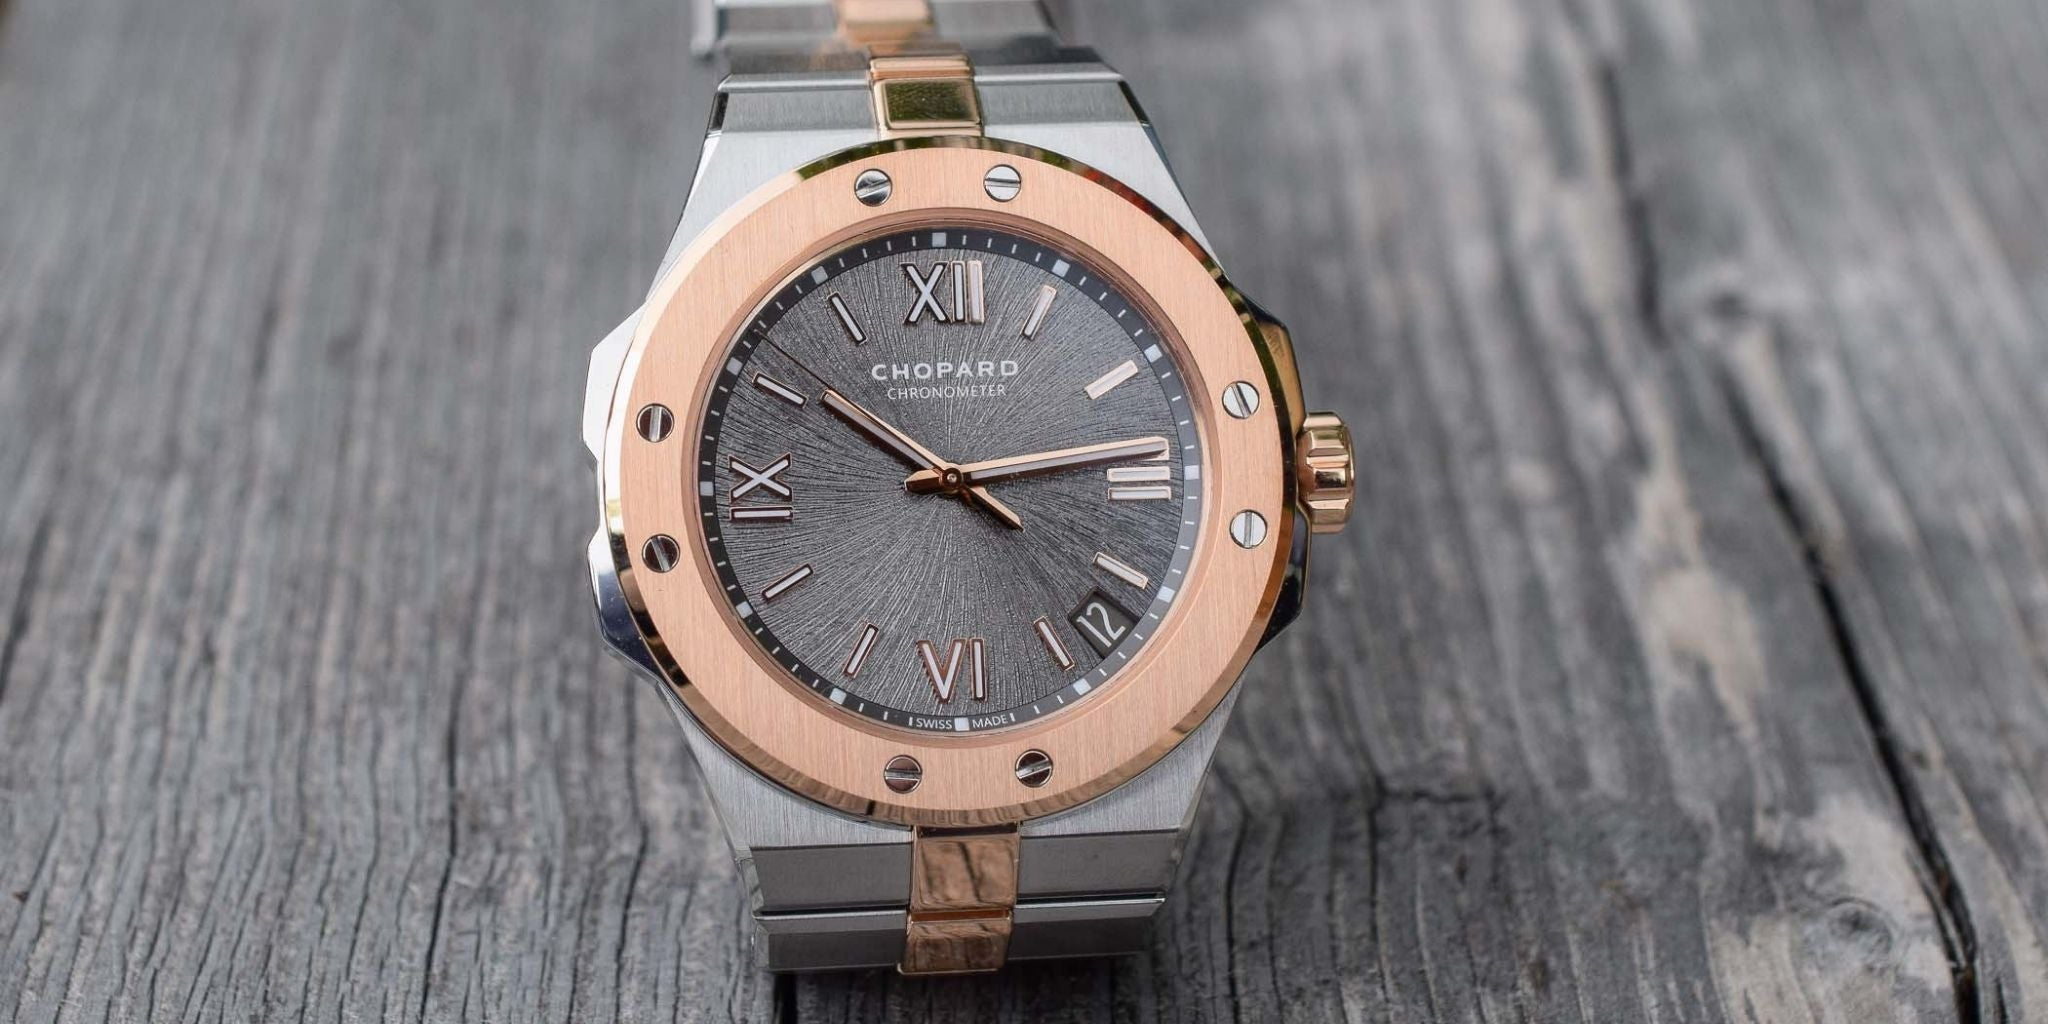 Chopard- timeless luxury watches